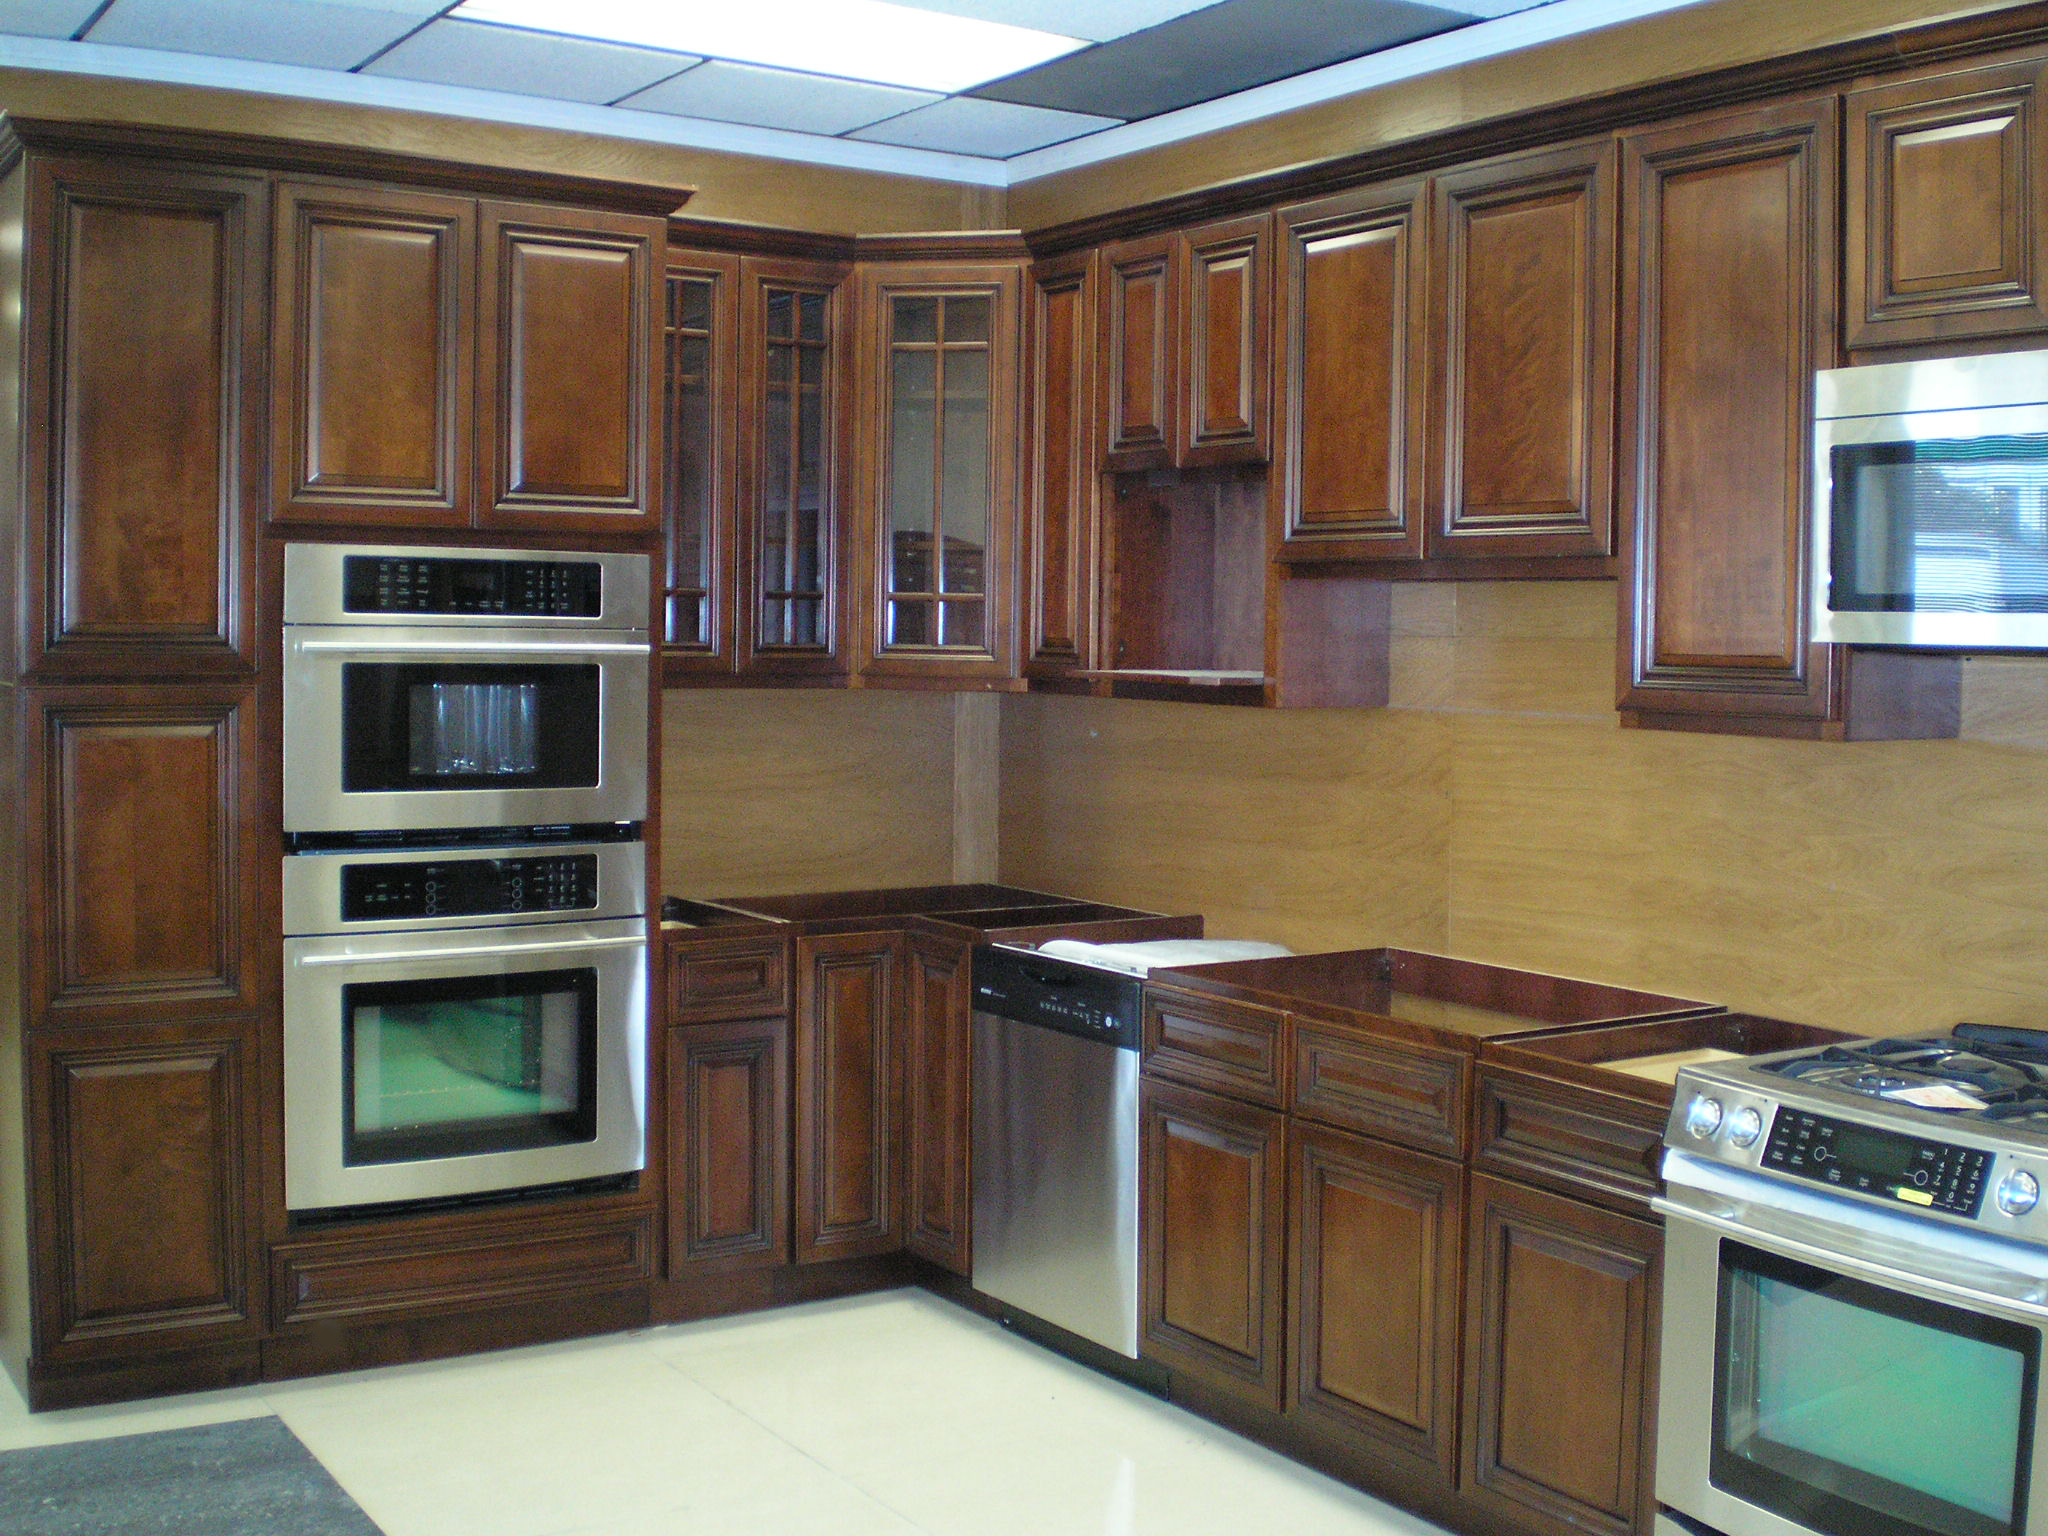 Fancy Elegant Walnut Kitchen Cabinets Gallery Of Our Exclusive All Wood Cabinetry